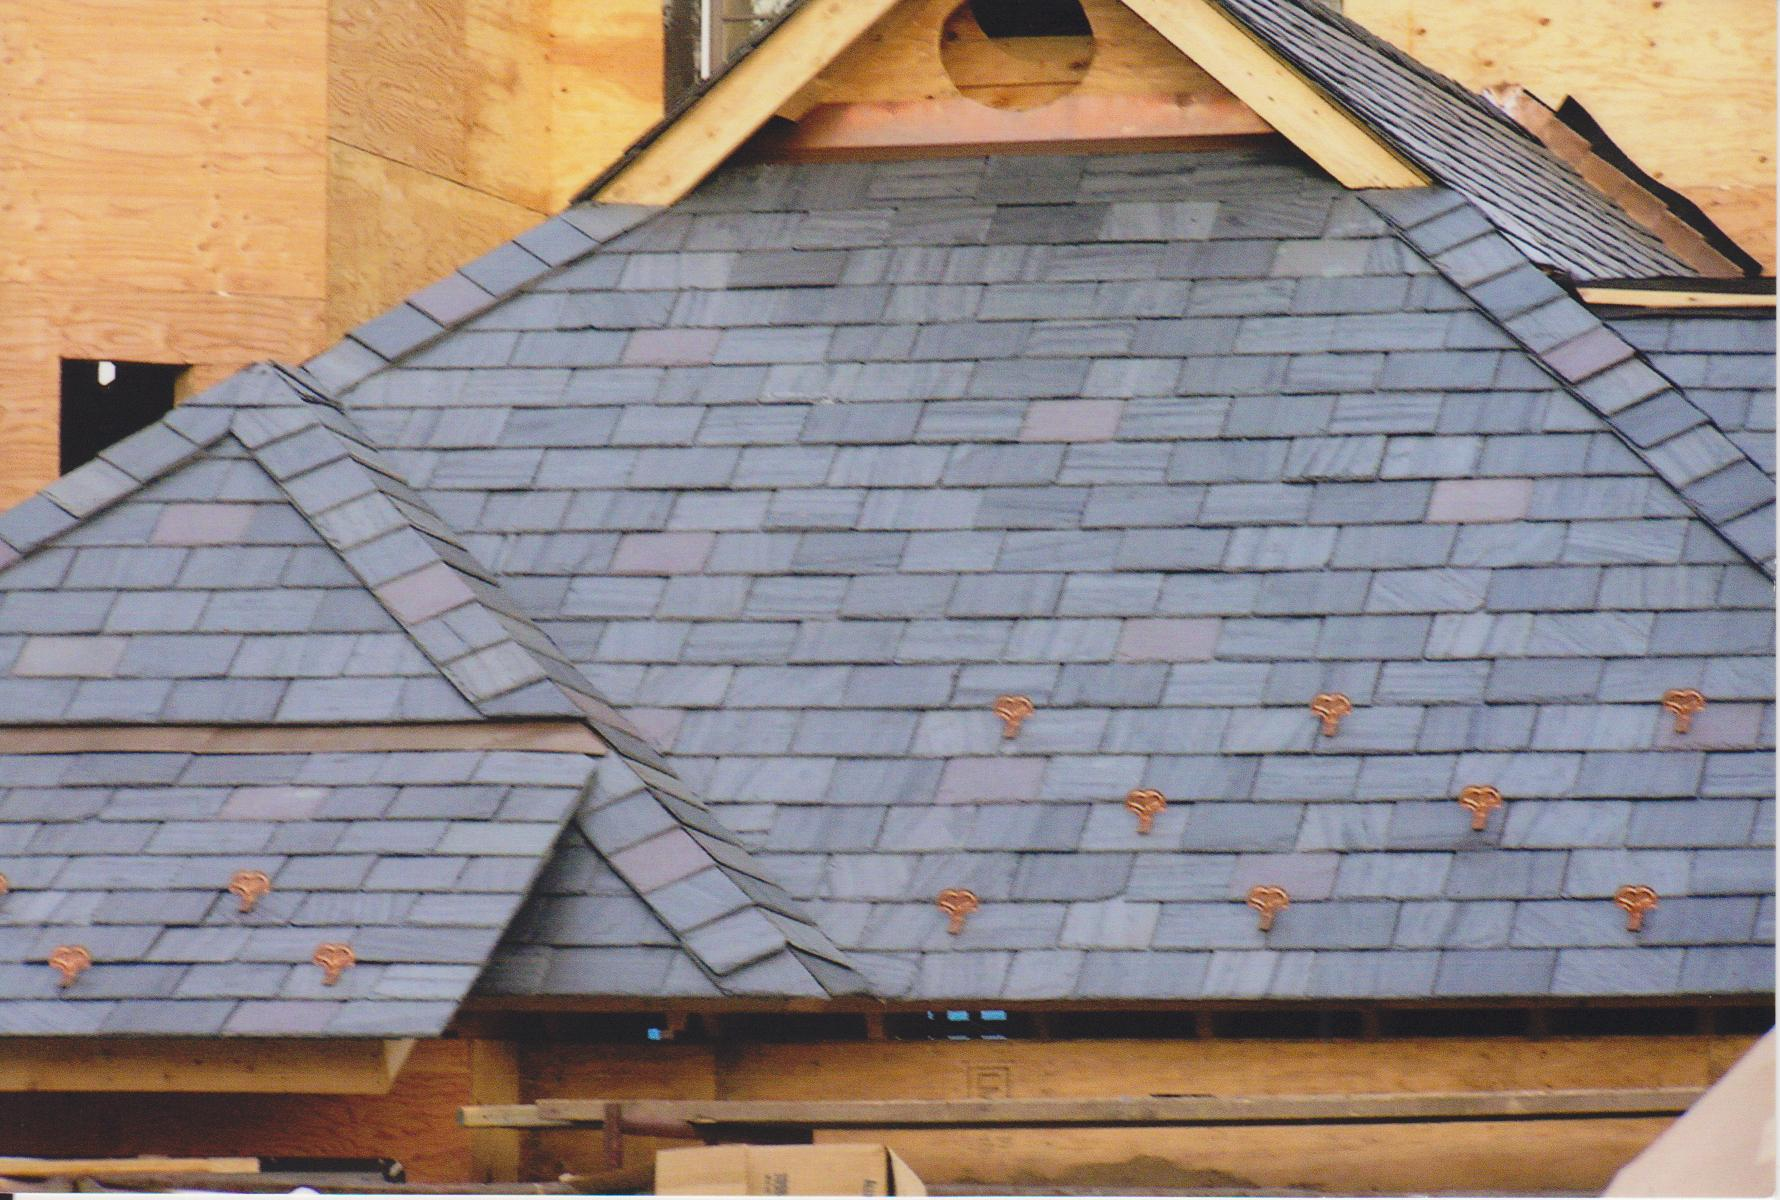 Slate Roof Installation Details : Roof hips hip ridge rafters u do you know how to